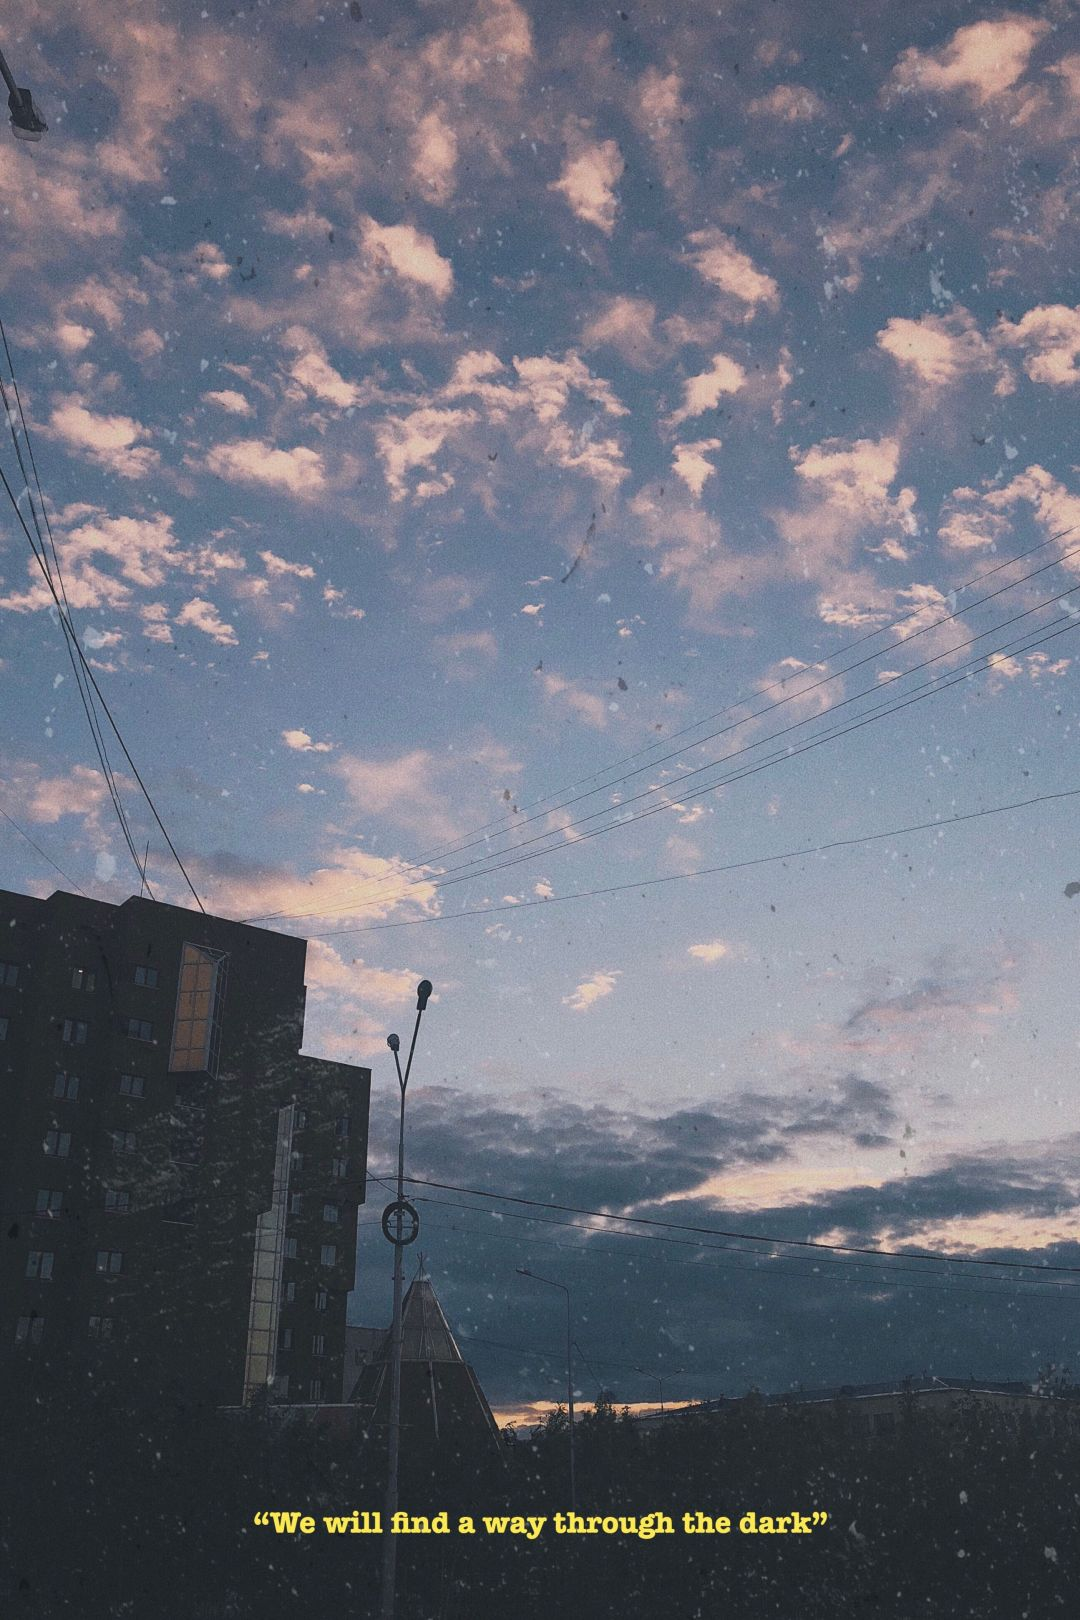 Sad Aesthetic Tumblr - Aesthetic Dark Clouds Quotes , HD Wallpaper & Backgrounds